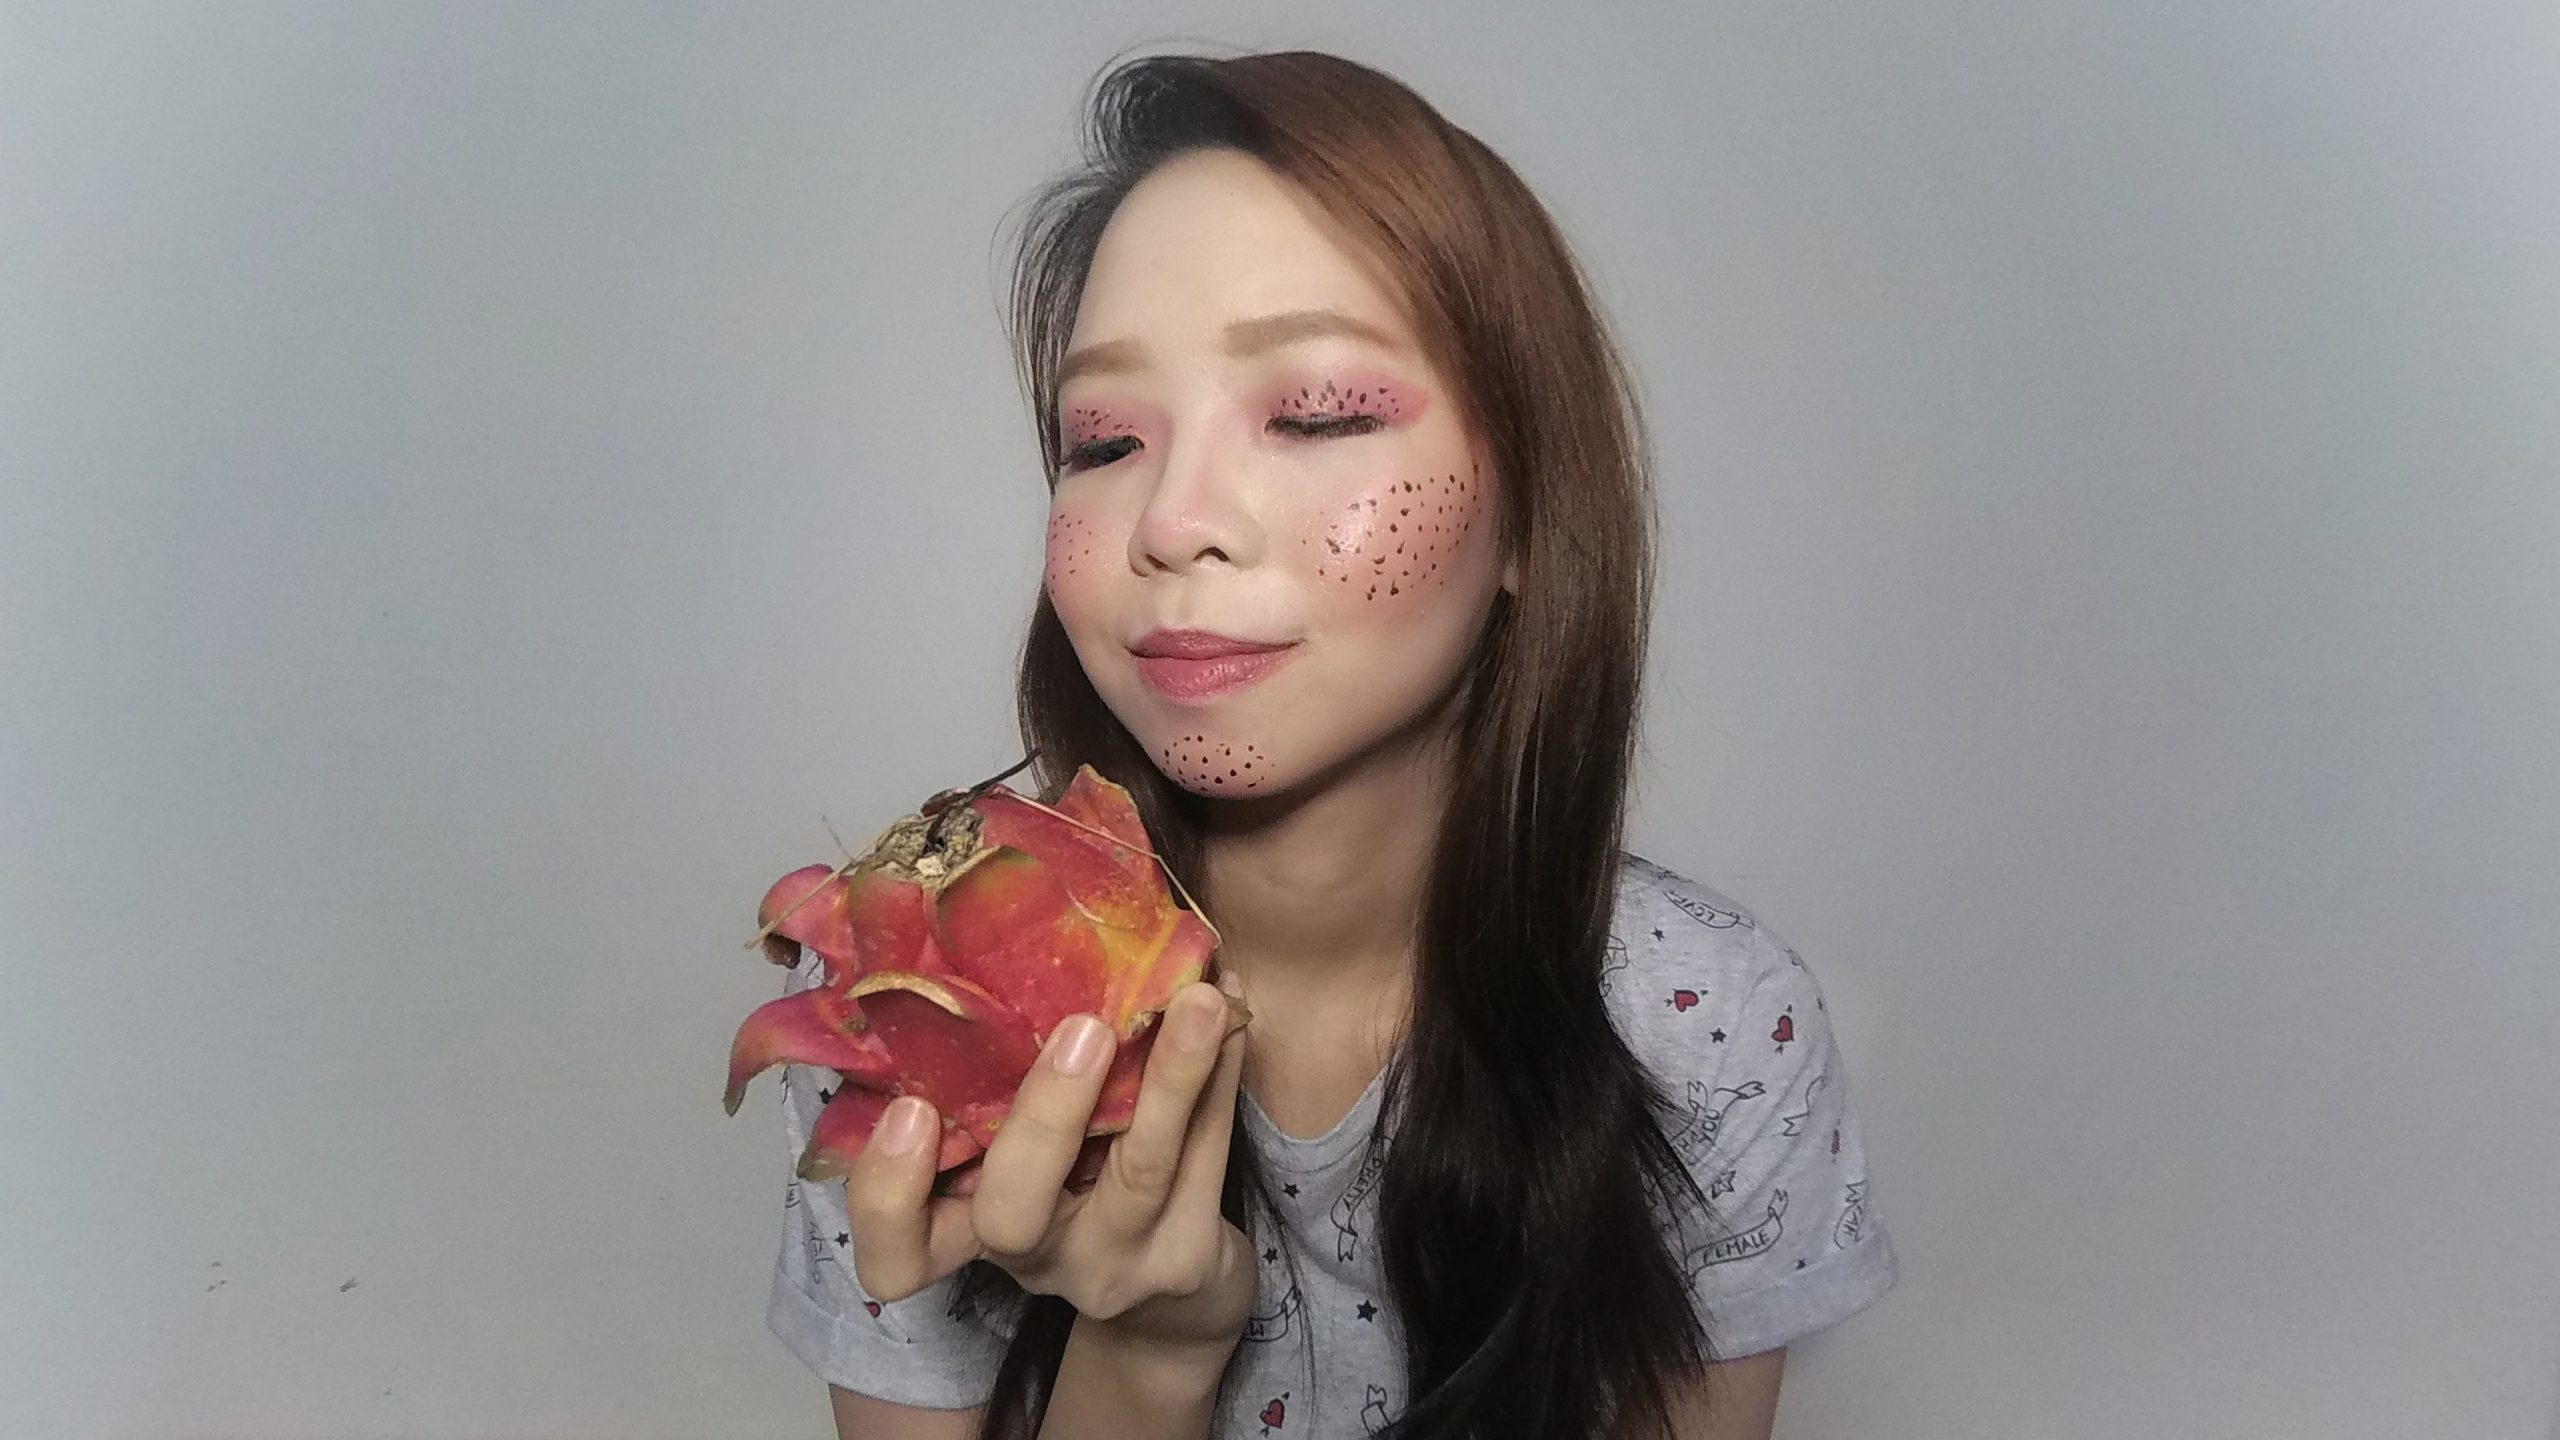 YDXJ0639 01 scaled Colorfruit Inspired Makeup Collaboration